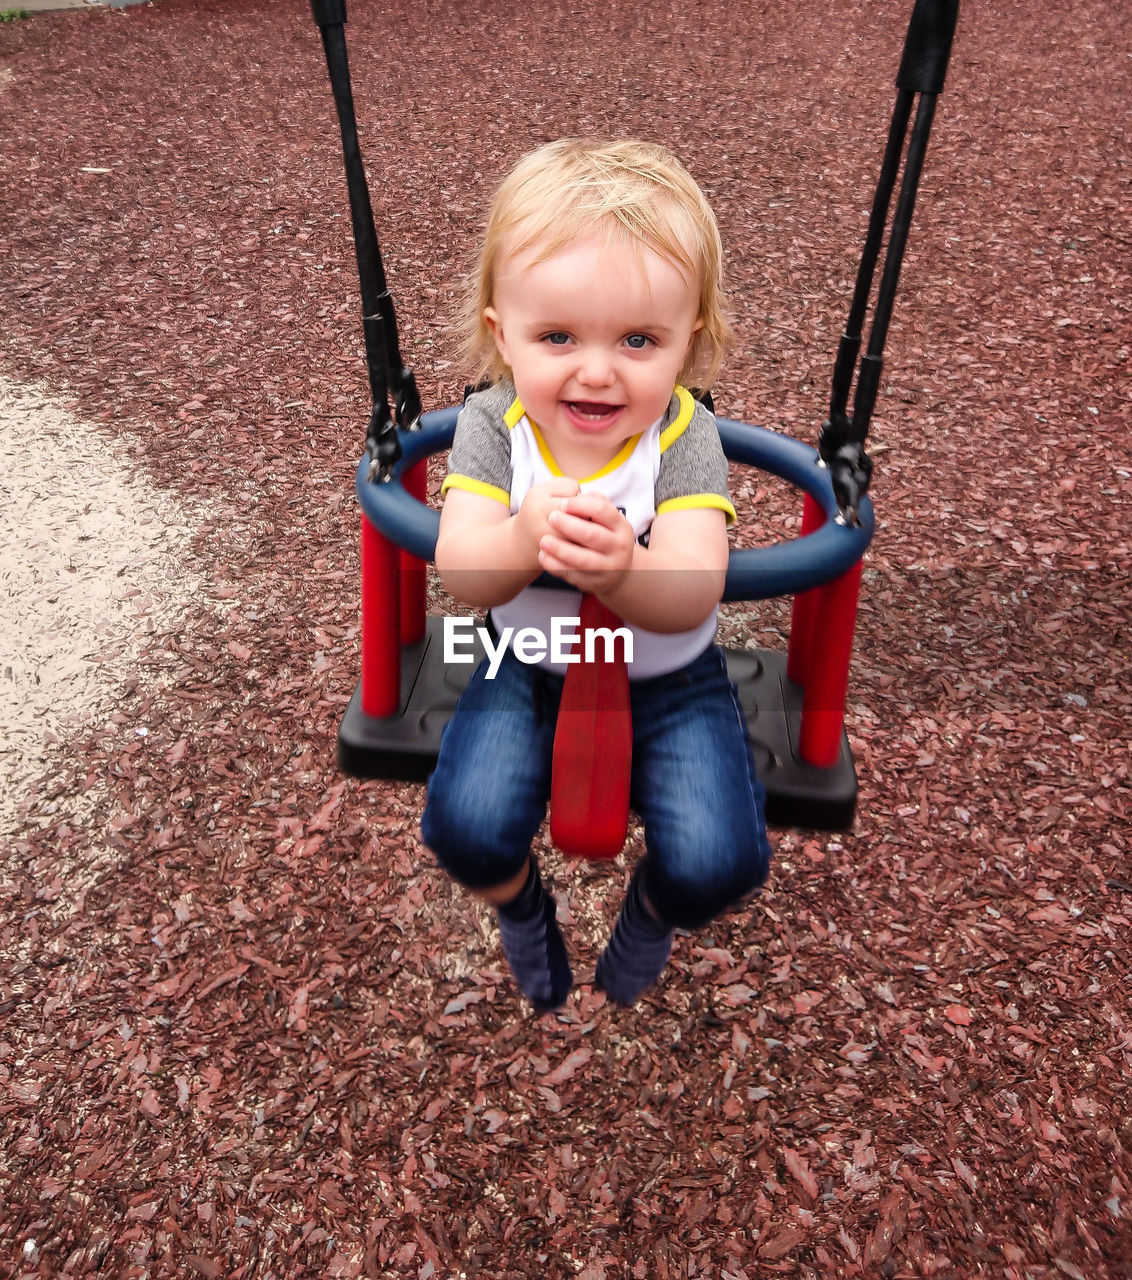 childhood, child, one person, innocence, full length, playground, real people, boys, males, front view, portrait, casual clothing, looking at camera, day, leisure activity, cute, men, playing, outdoors, outdoor play equipment